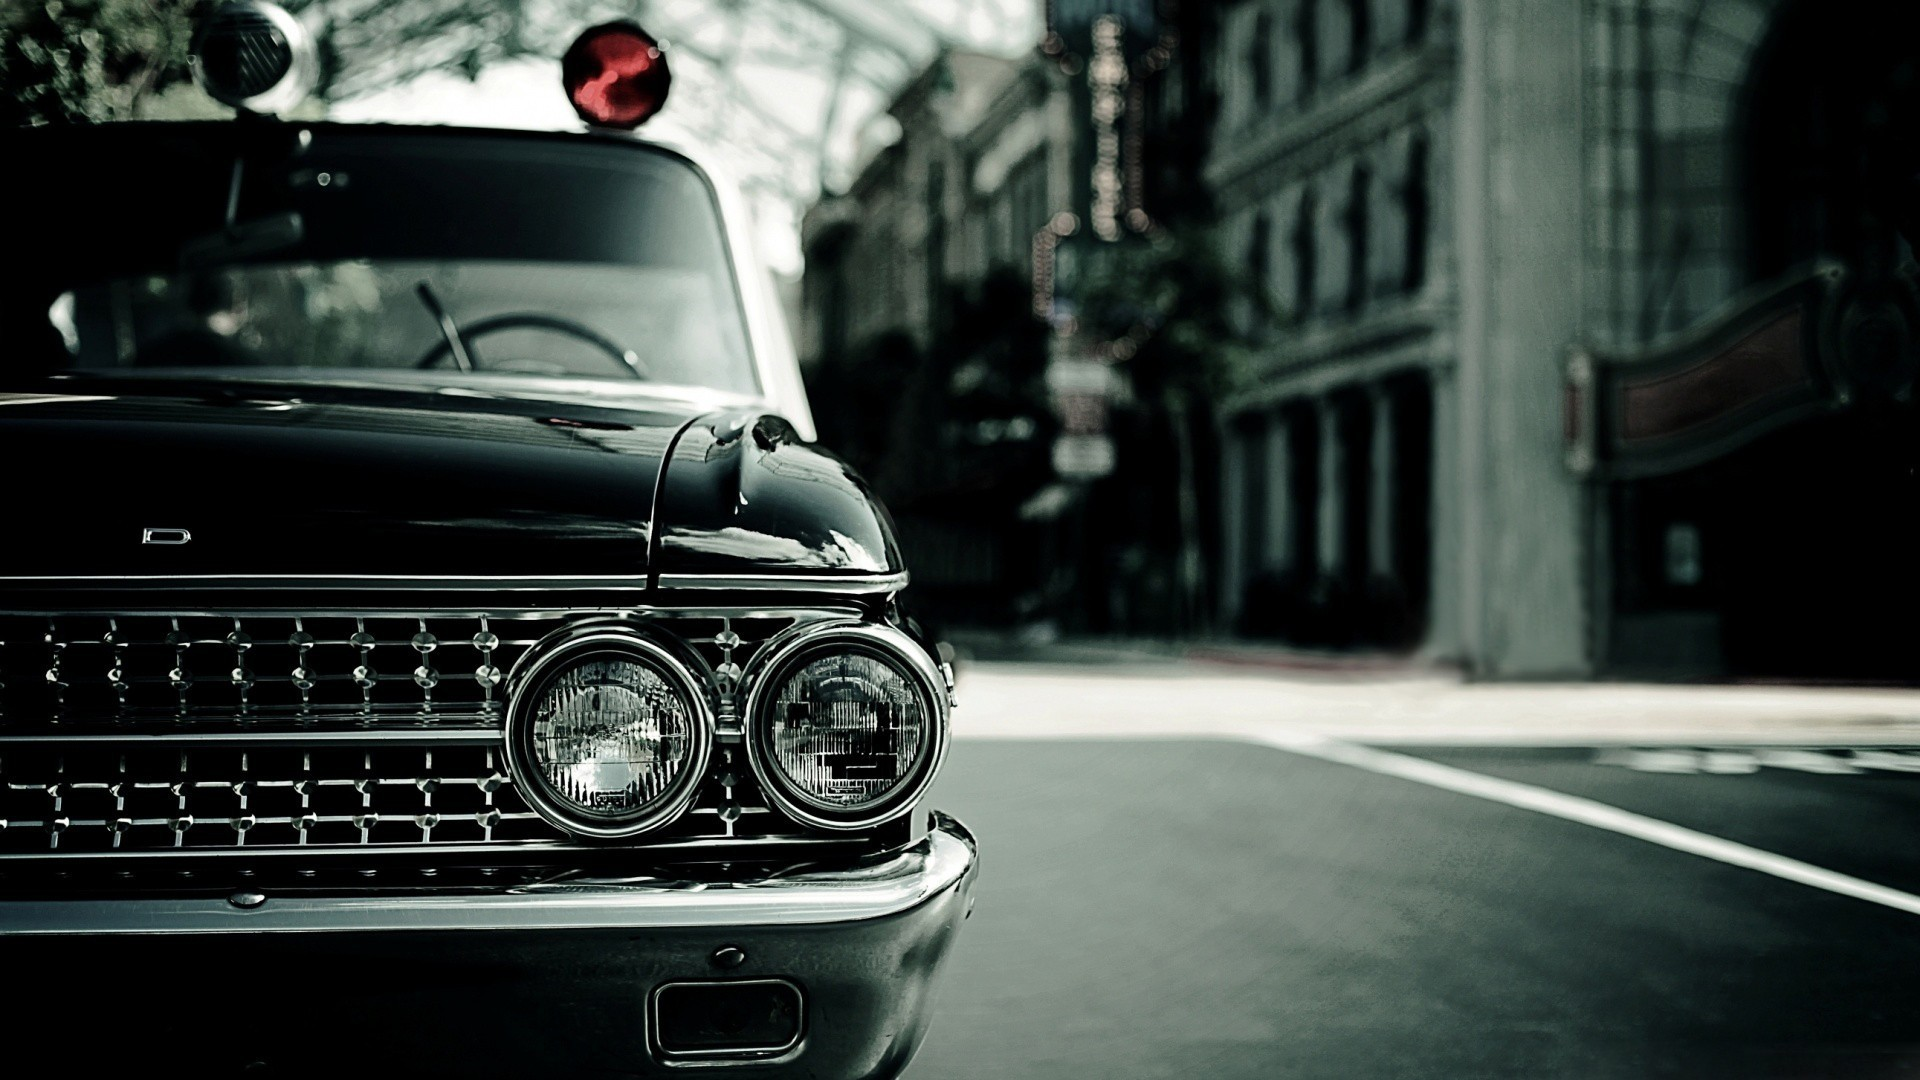 Vintage Police Car Wallpaper